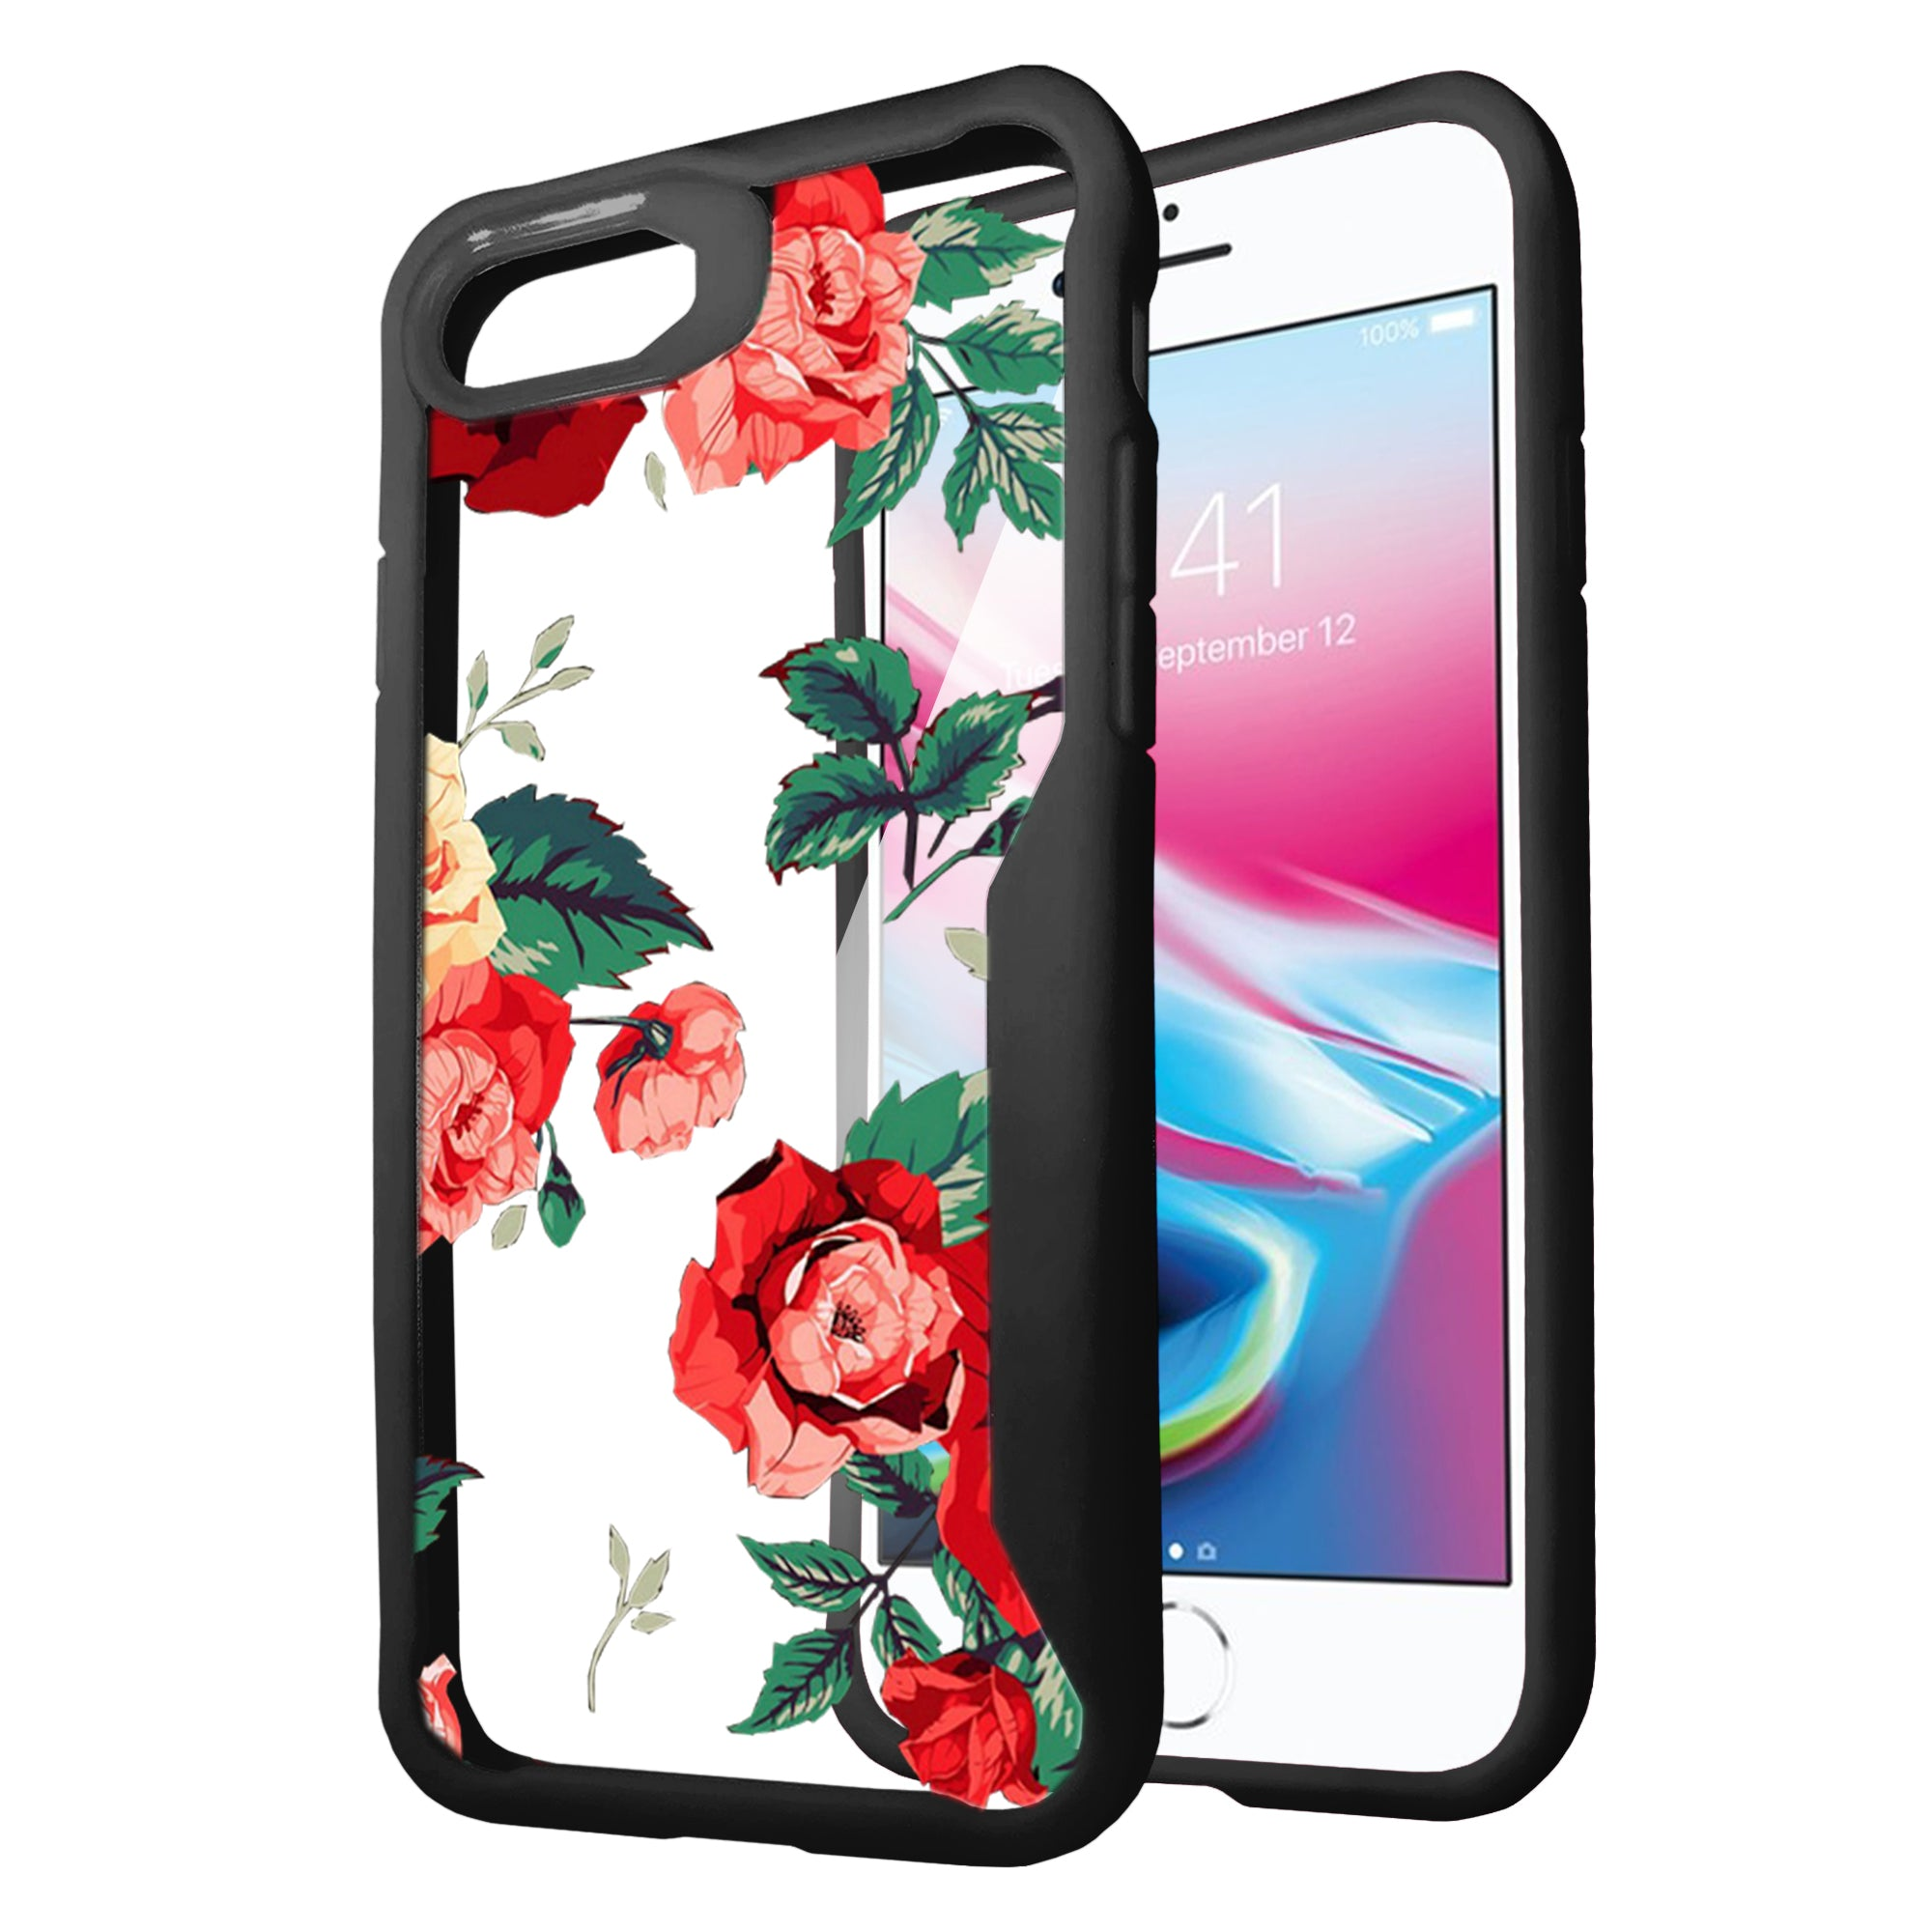 For-Apple-iPhone-8-Plus-Clear-Case-with-Black-Silicone-Edges-Floral-Design thumbnail 19